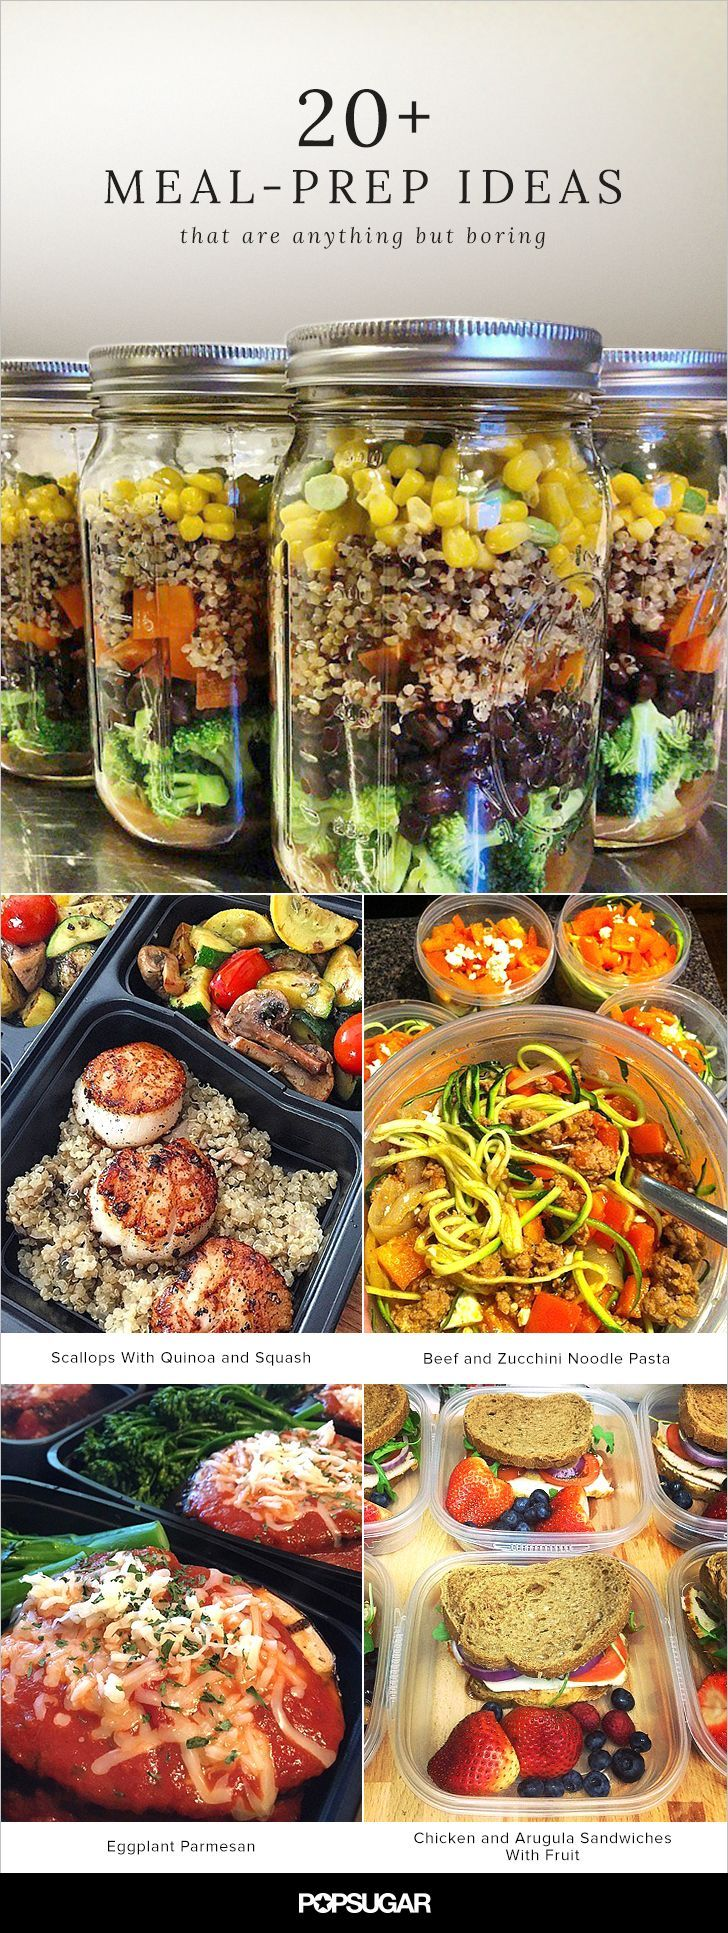 21 #mealprep Ideas That Are Anything But Boring